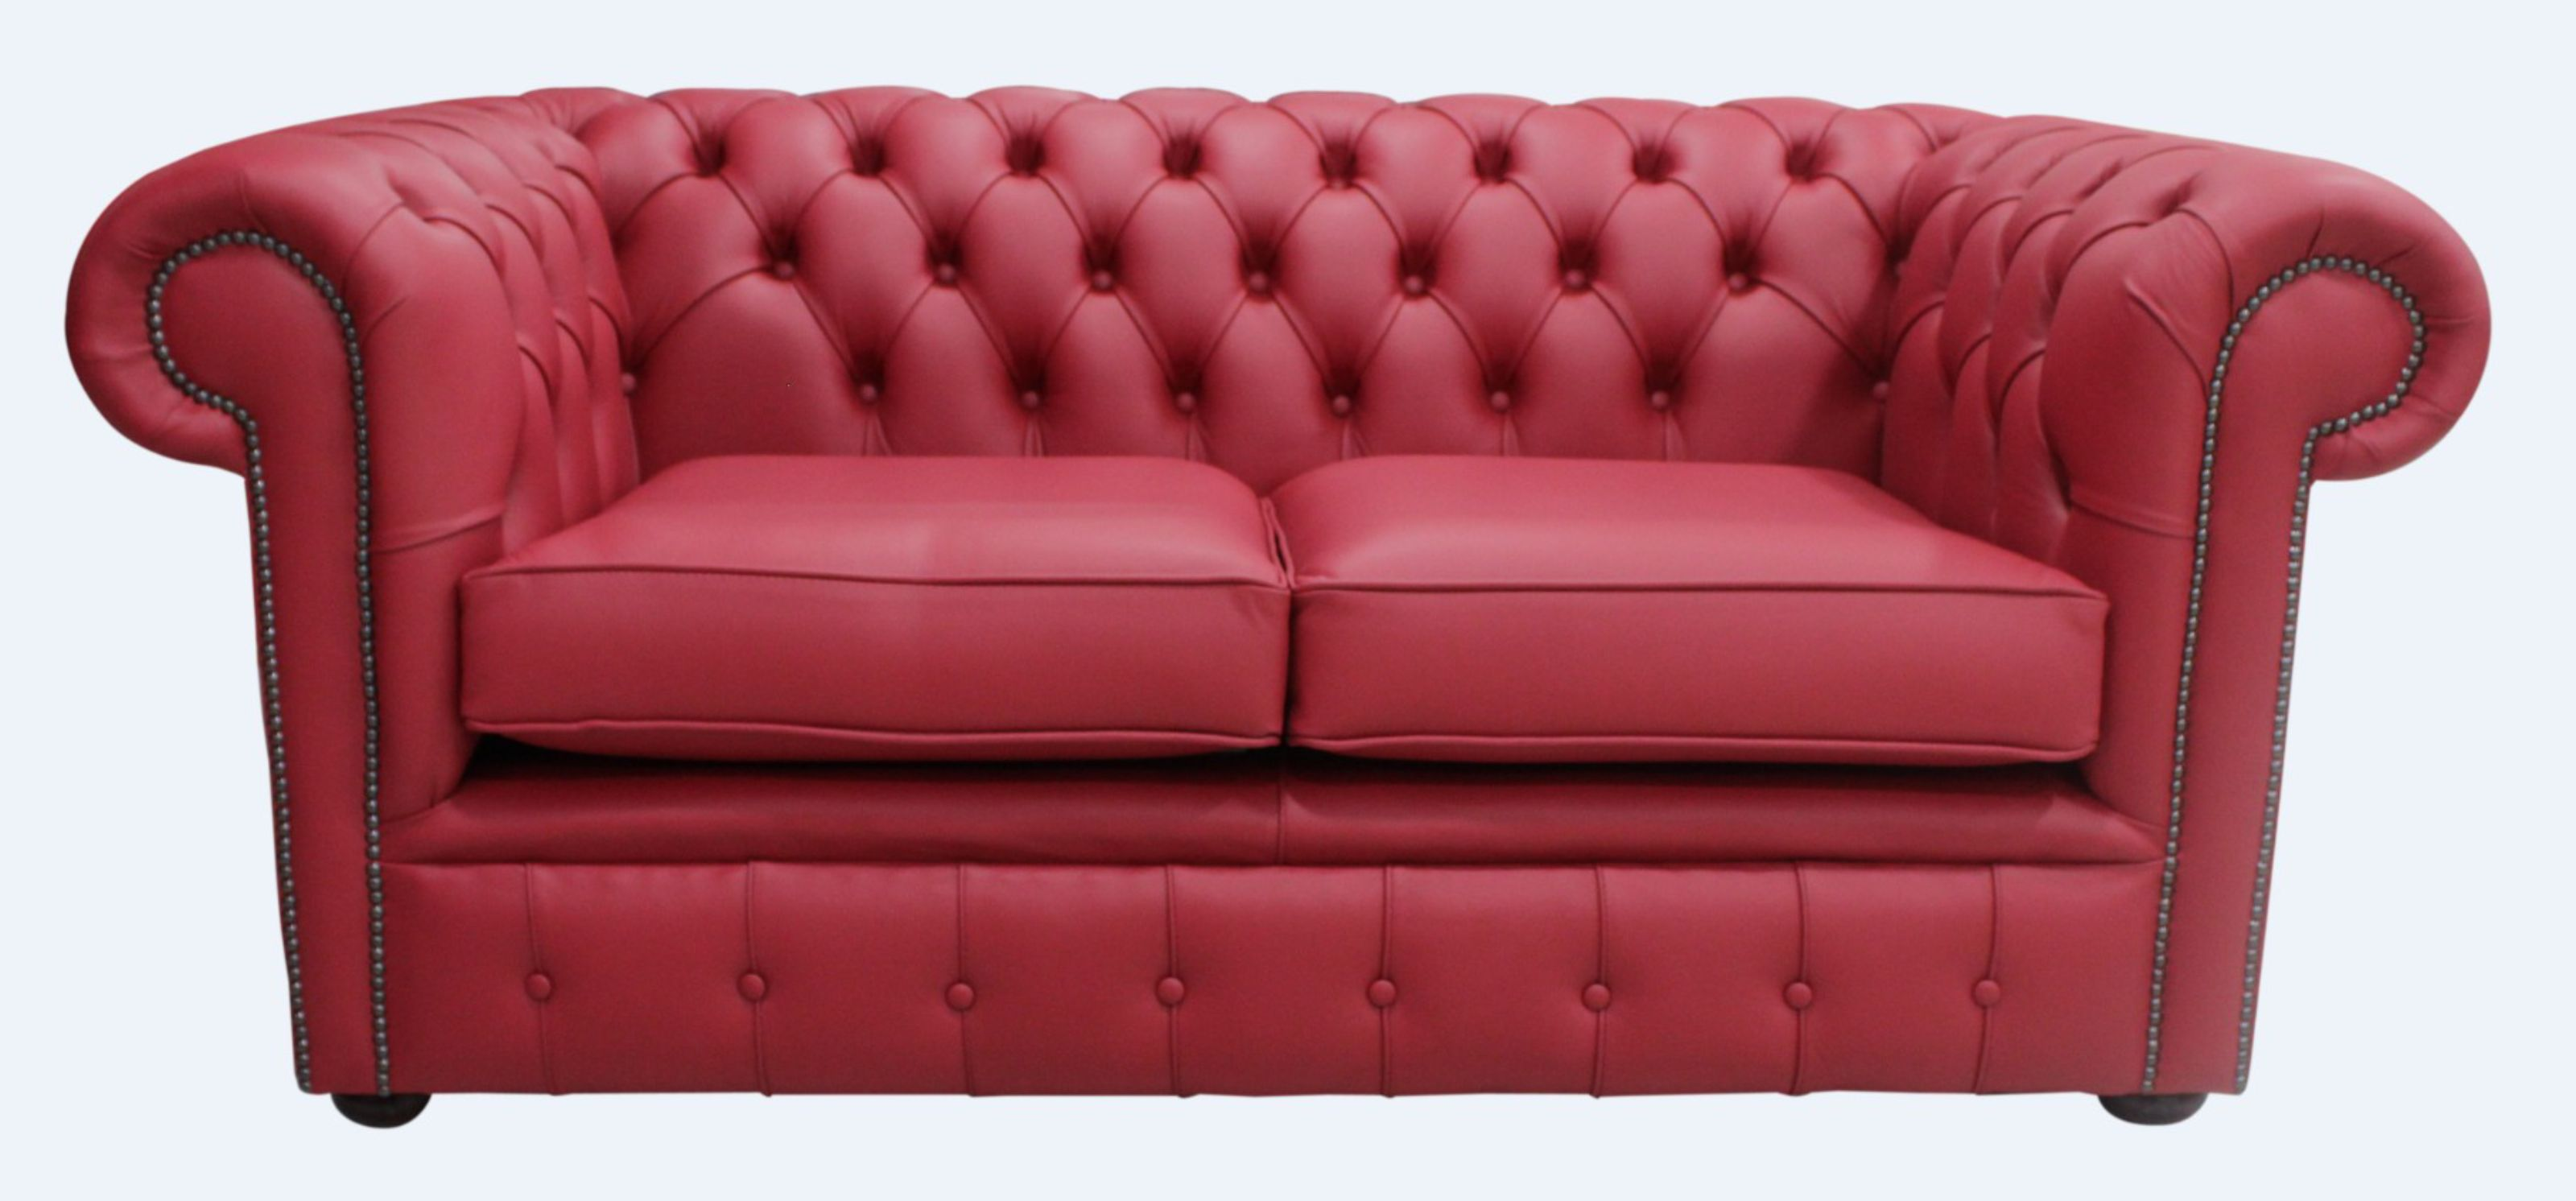 red leather two seater sofa house of fraser brown buy poppy chesterfield at designersofas4u 2 settee